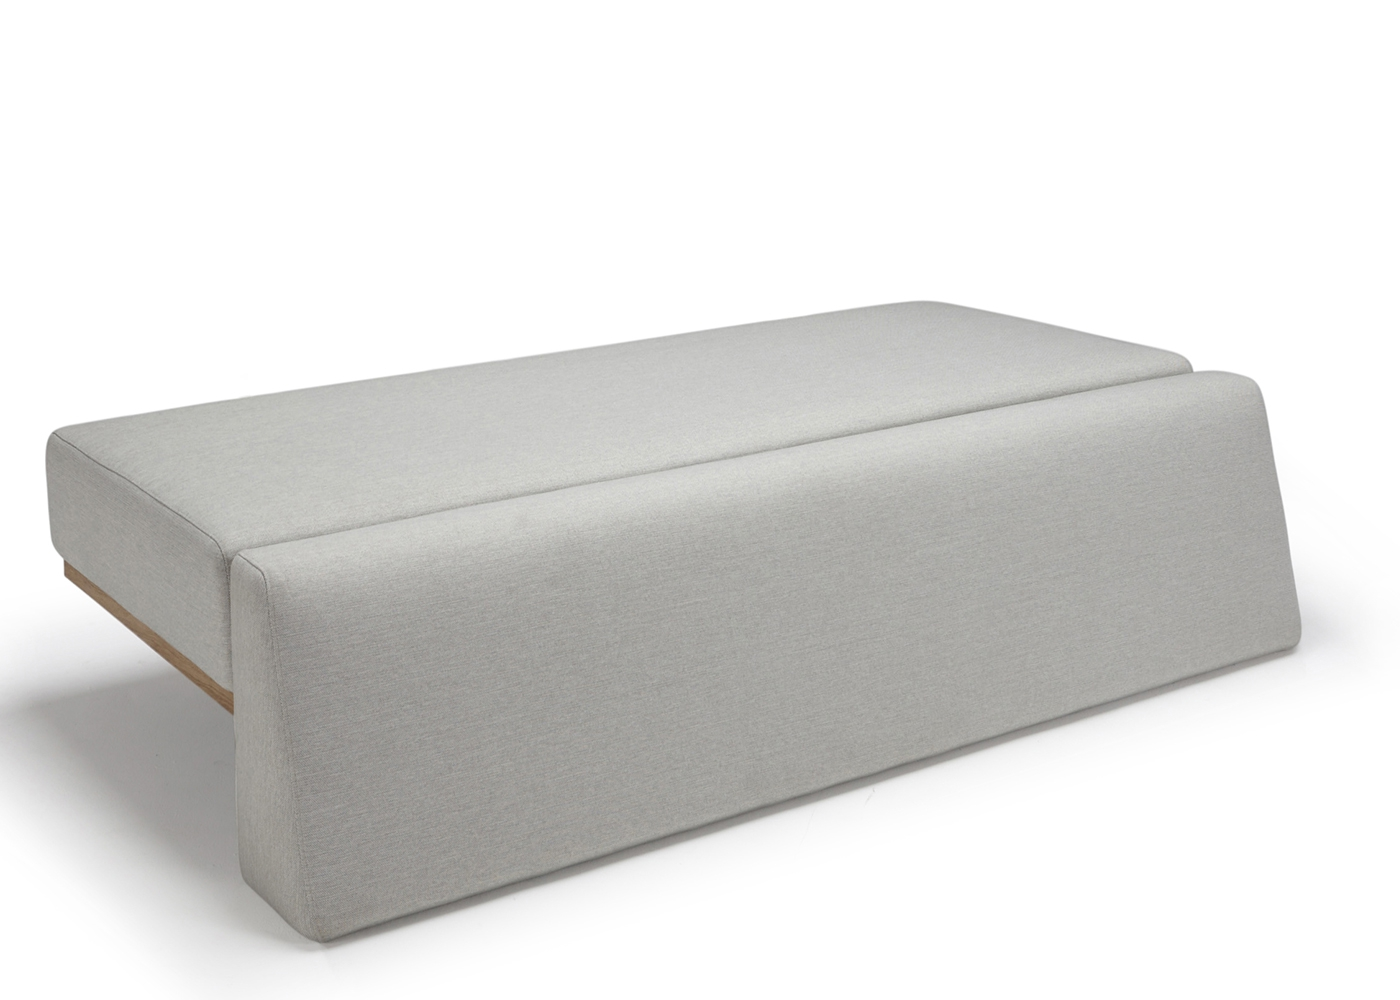 Canap daybeds vanadis innovation living - Canape convertible pour usage quotidien ...